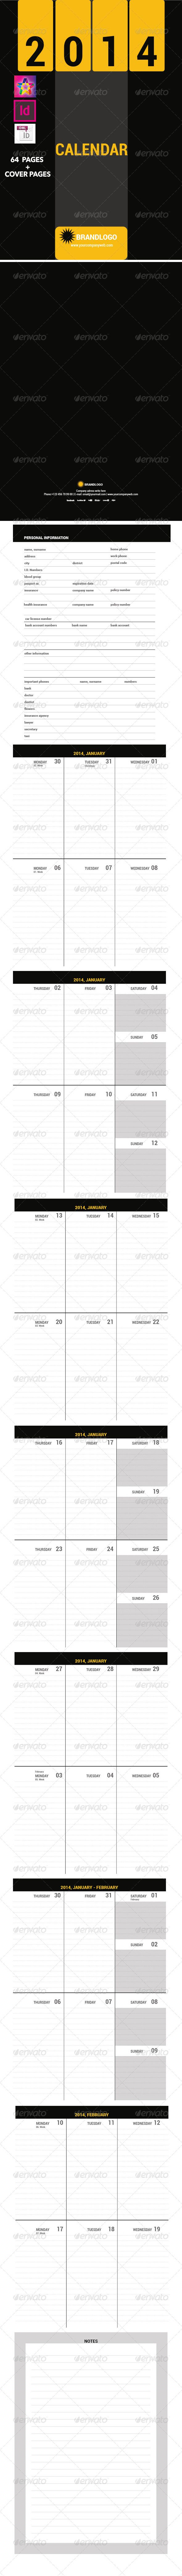 Amazing 100 Free Resume Builder Big 1099 Template Excel Solid 15 Year Old Resume Sample 2 Page Resume Design Youthful 2014 Calendar Template Monthly Pink2015 Calendar Planner Template 25  Best Ideas About November 2014 Calendar On Pinterest | May ..